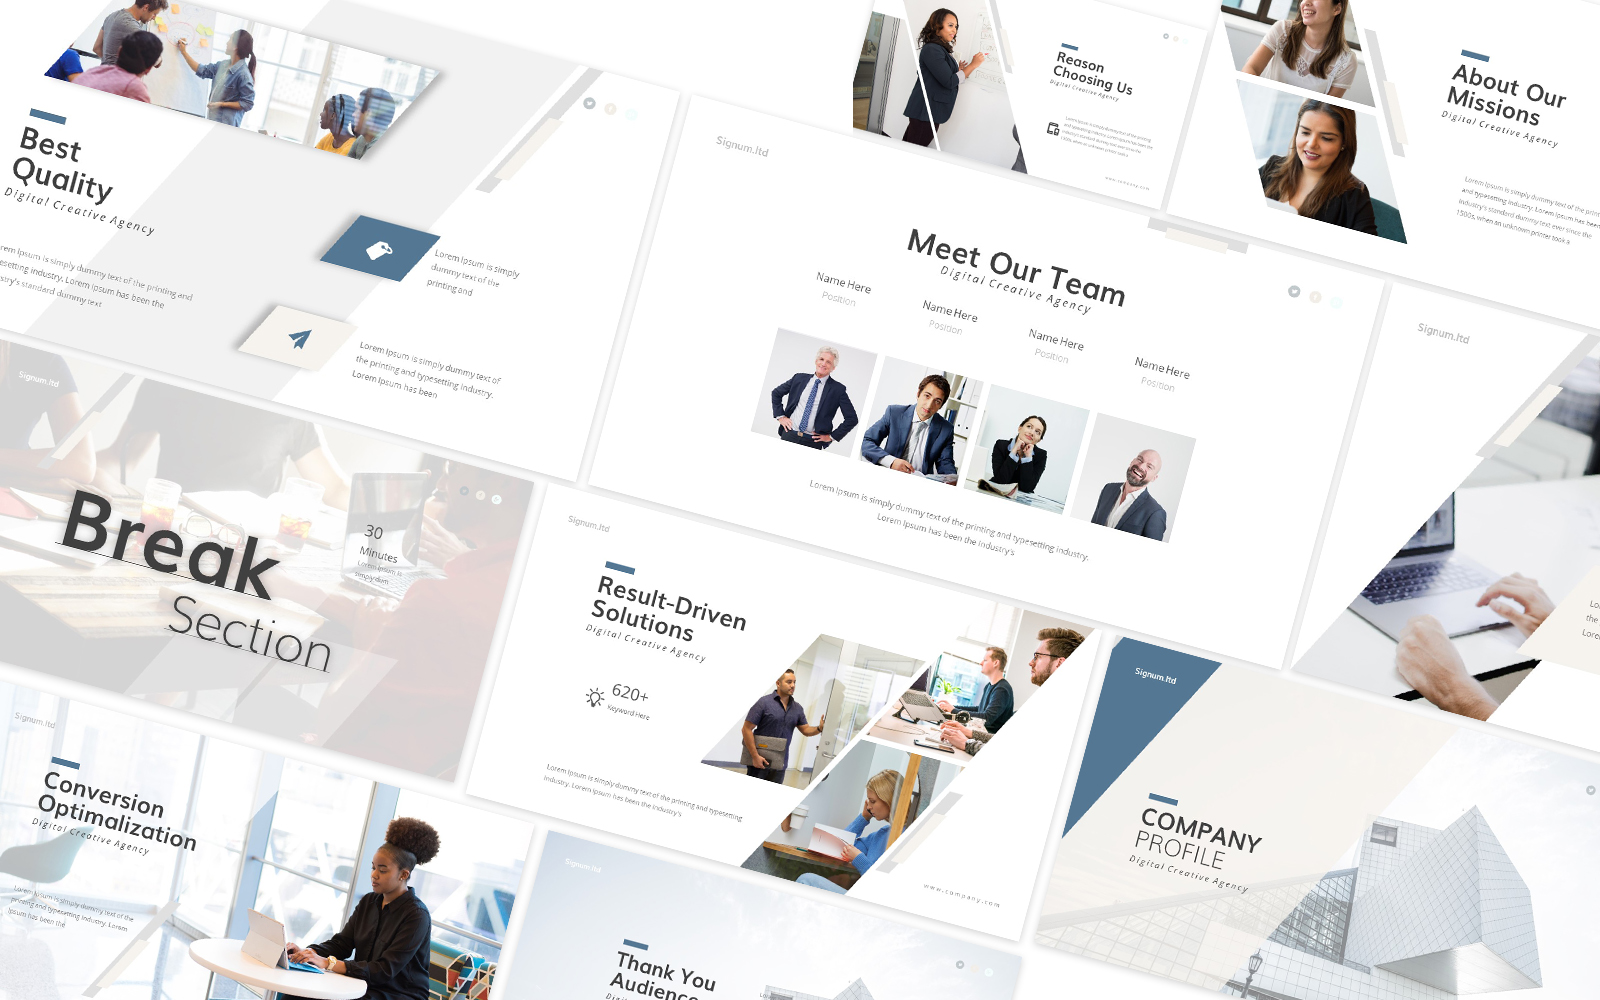 Company Profile 2 Powerpoint Template